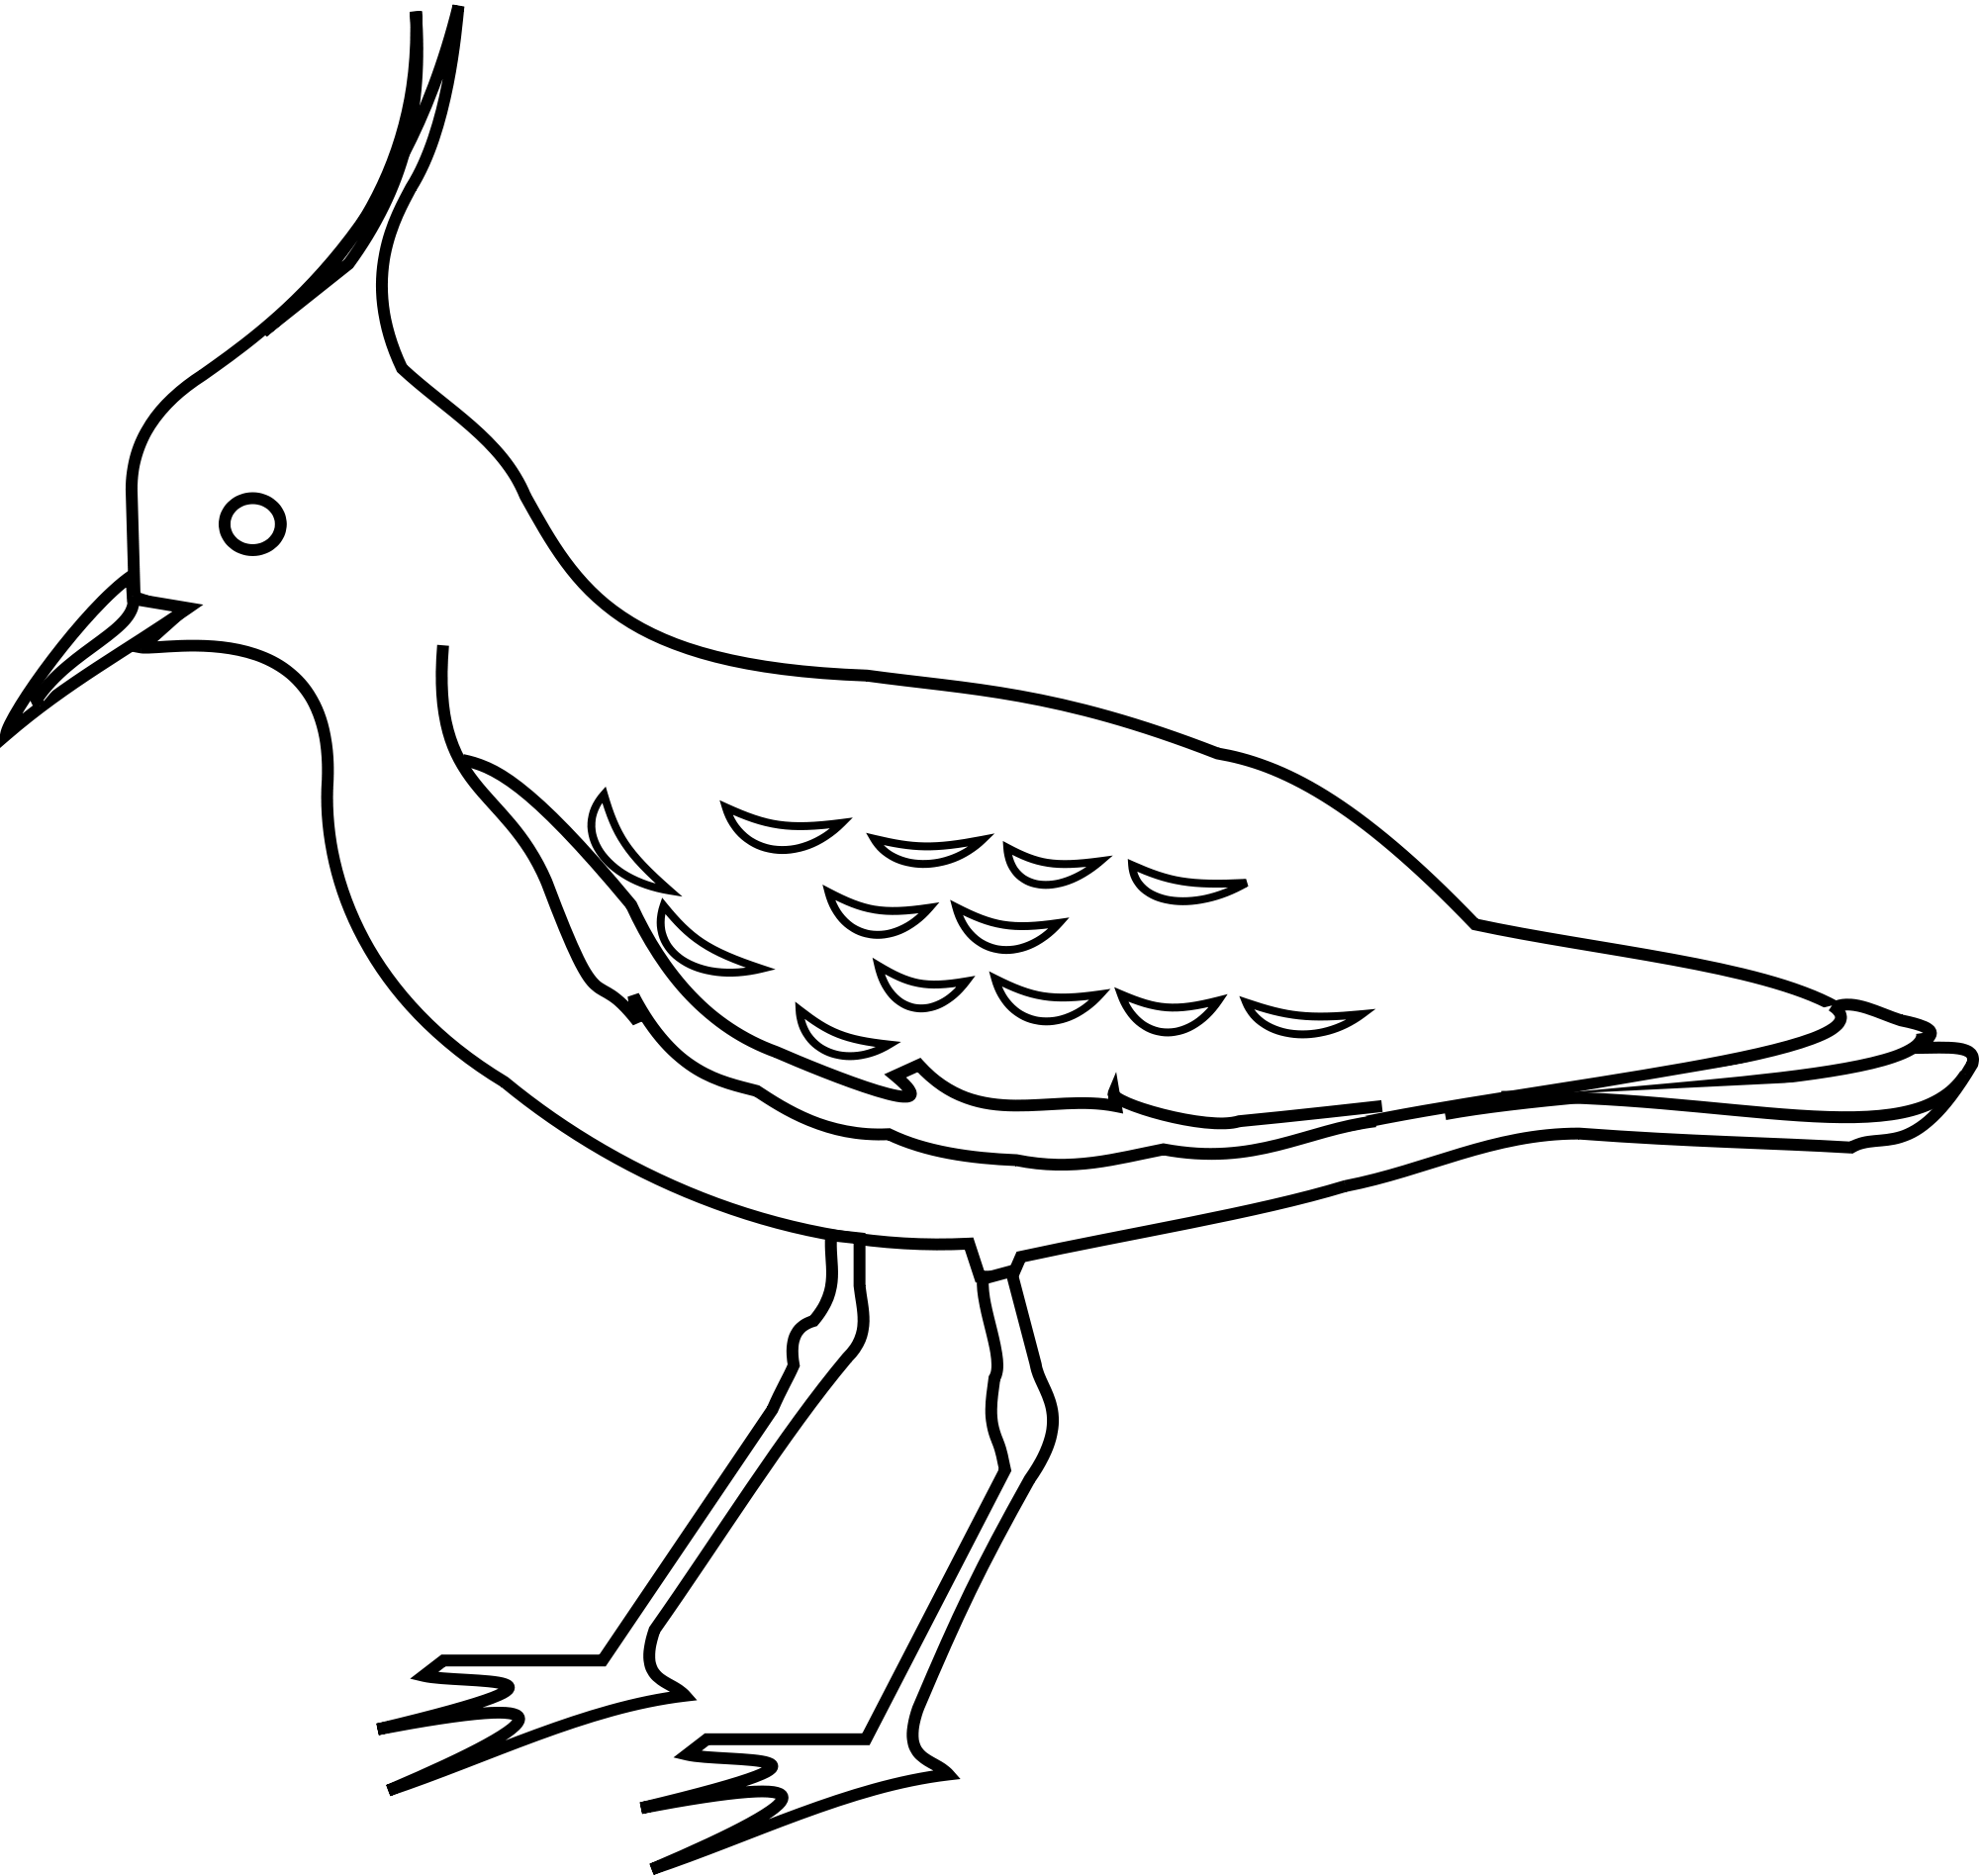 bird outlines clipart birds outline clipart birds outline transparent bird outlines